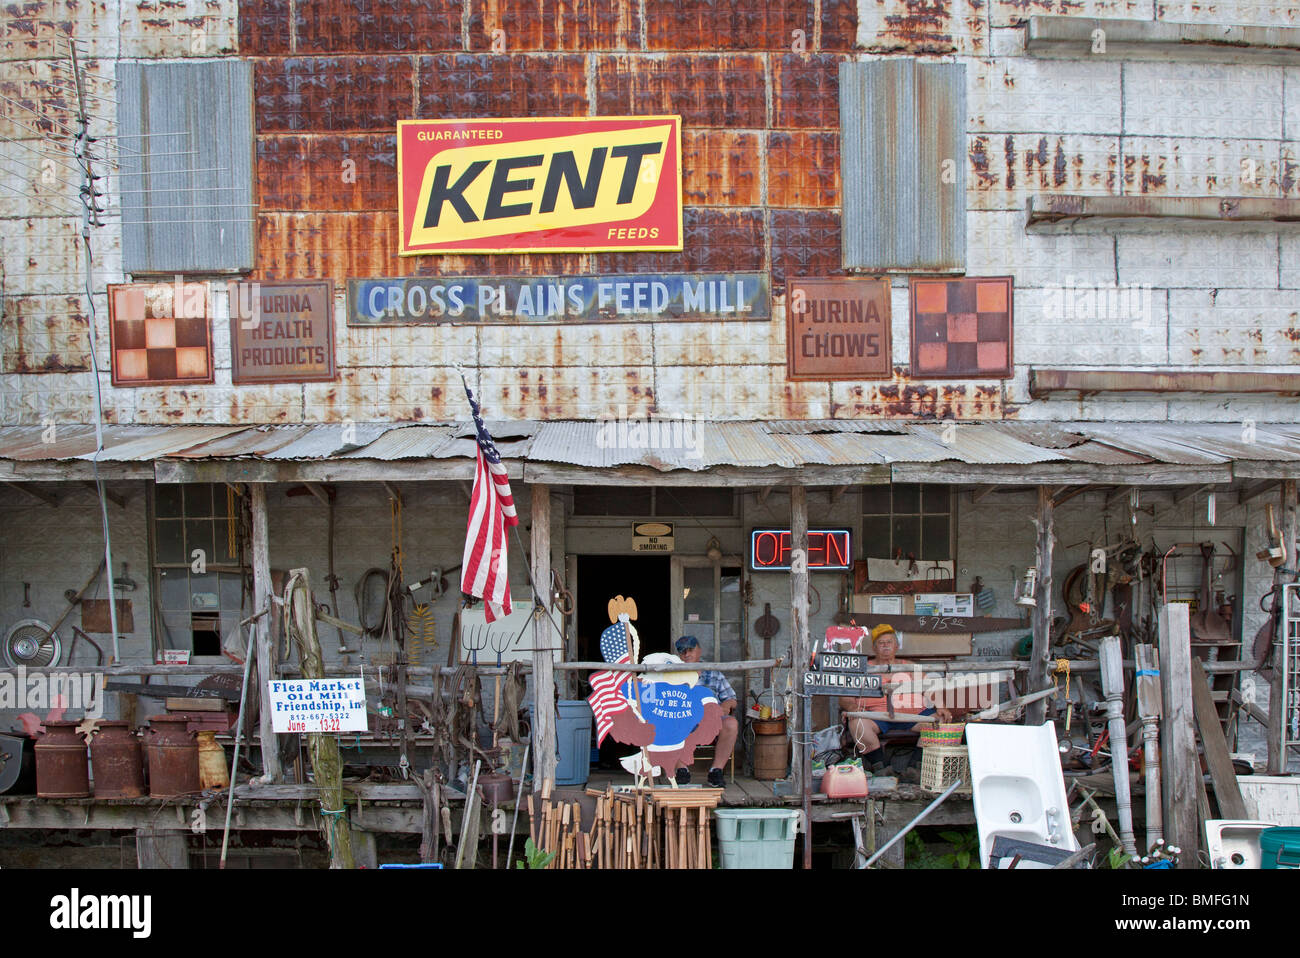 Cross Plains, Indiana - The old Cross Plains Feed Mill, now converted to a junk shop. - Stock Image